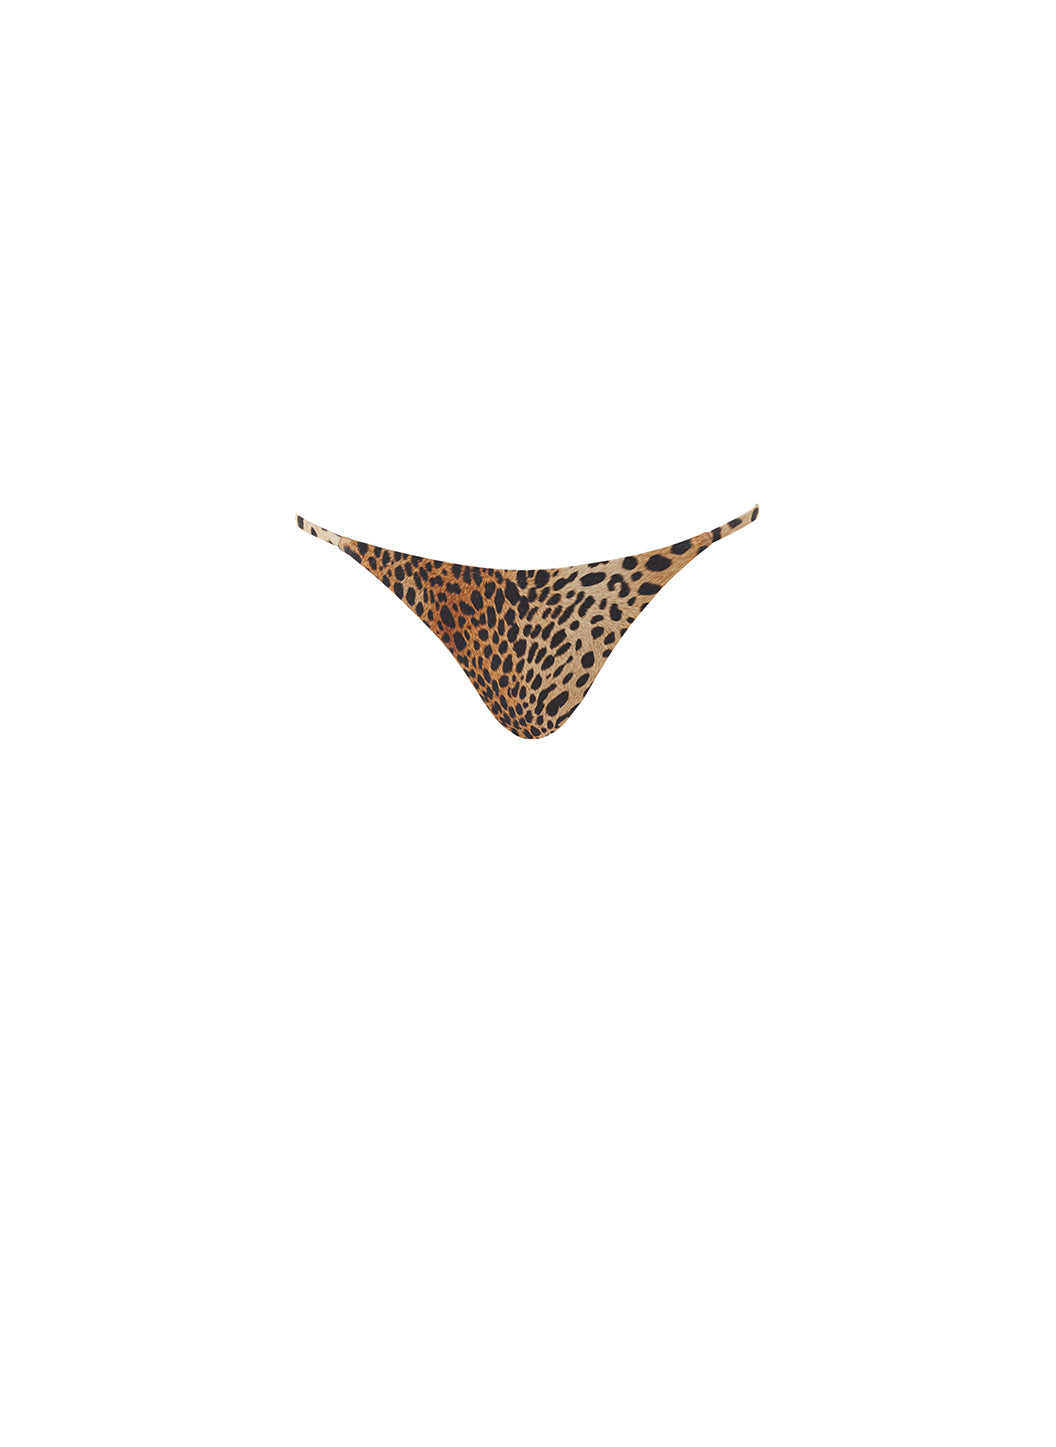 Exclusive St Tropez High Leg Bikini Bottoms Cheetah - Melissa Odabash Bikini Bottoms